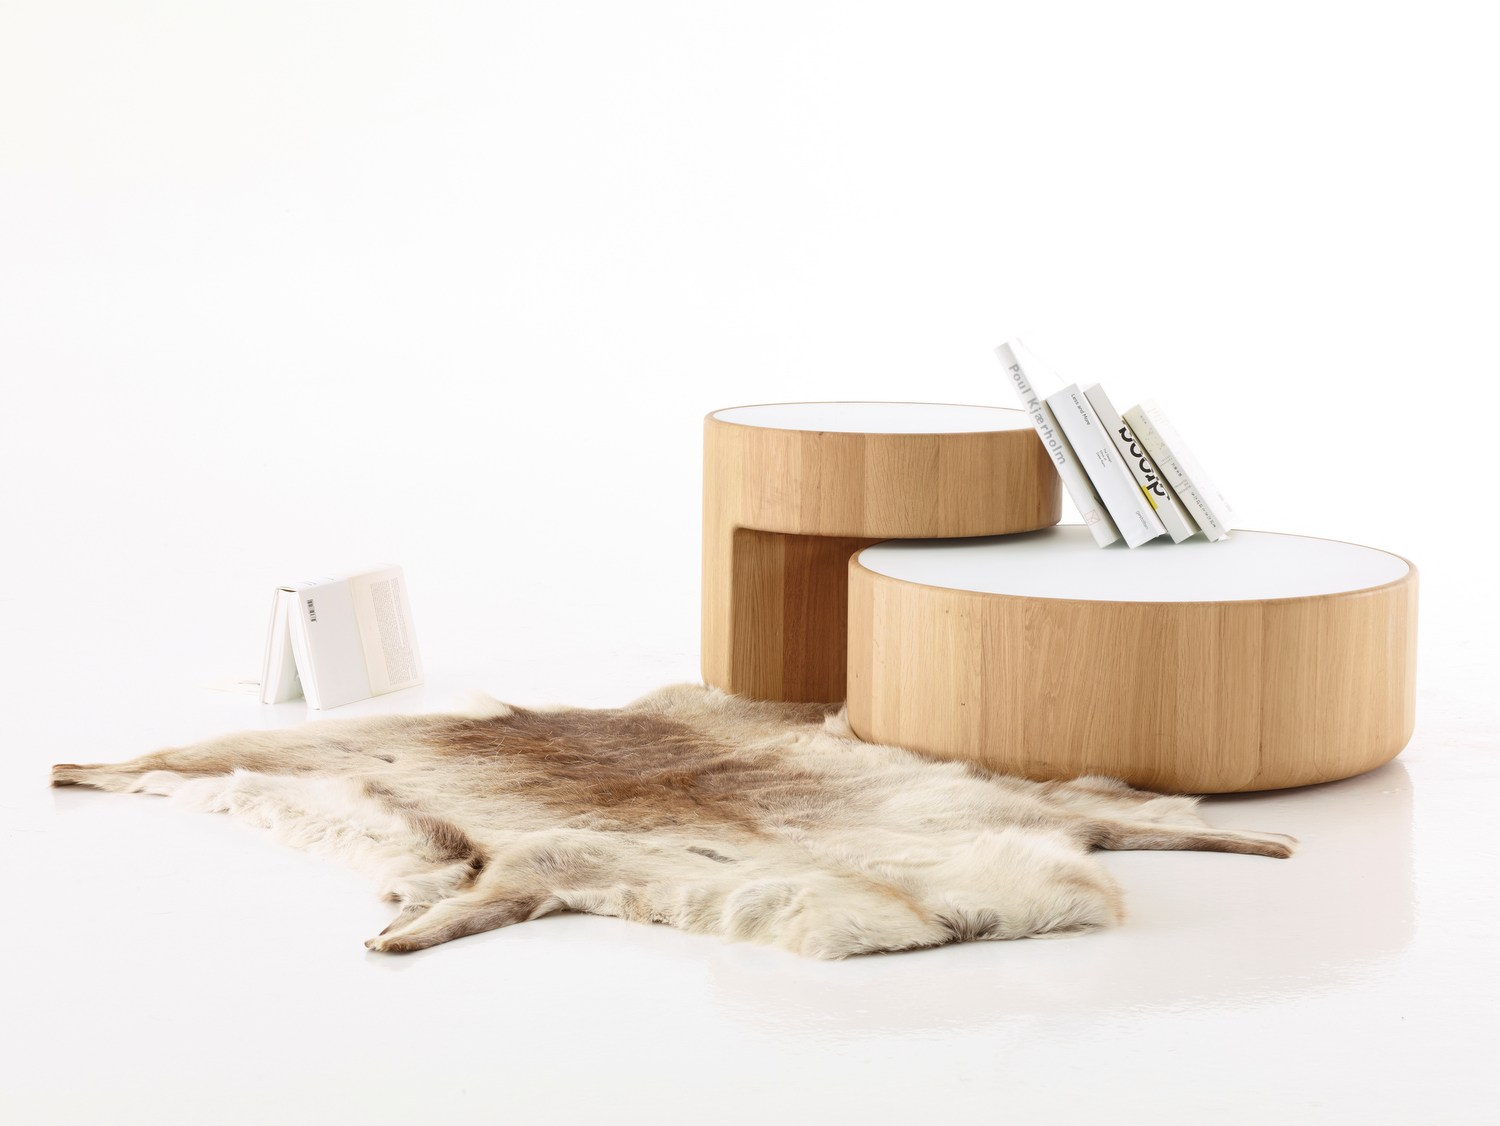 Levels Low Coffee Table By Per Use Design Lucie Koldova Dan Yeffet